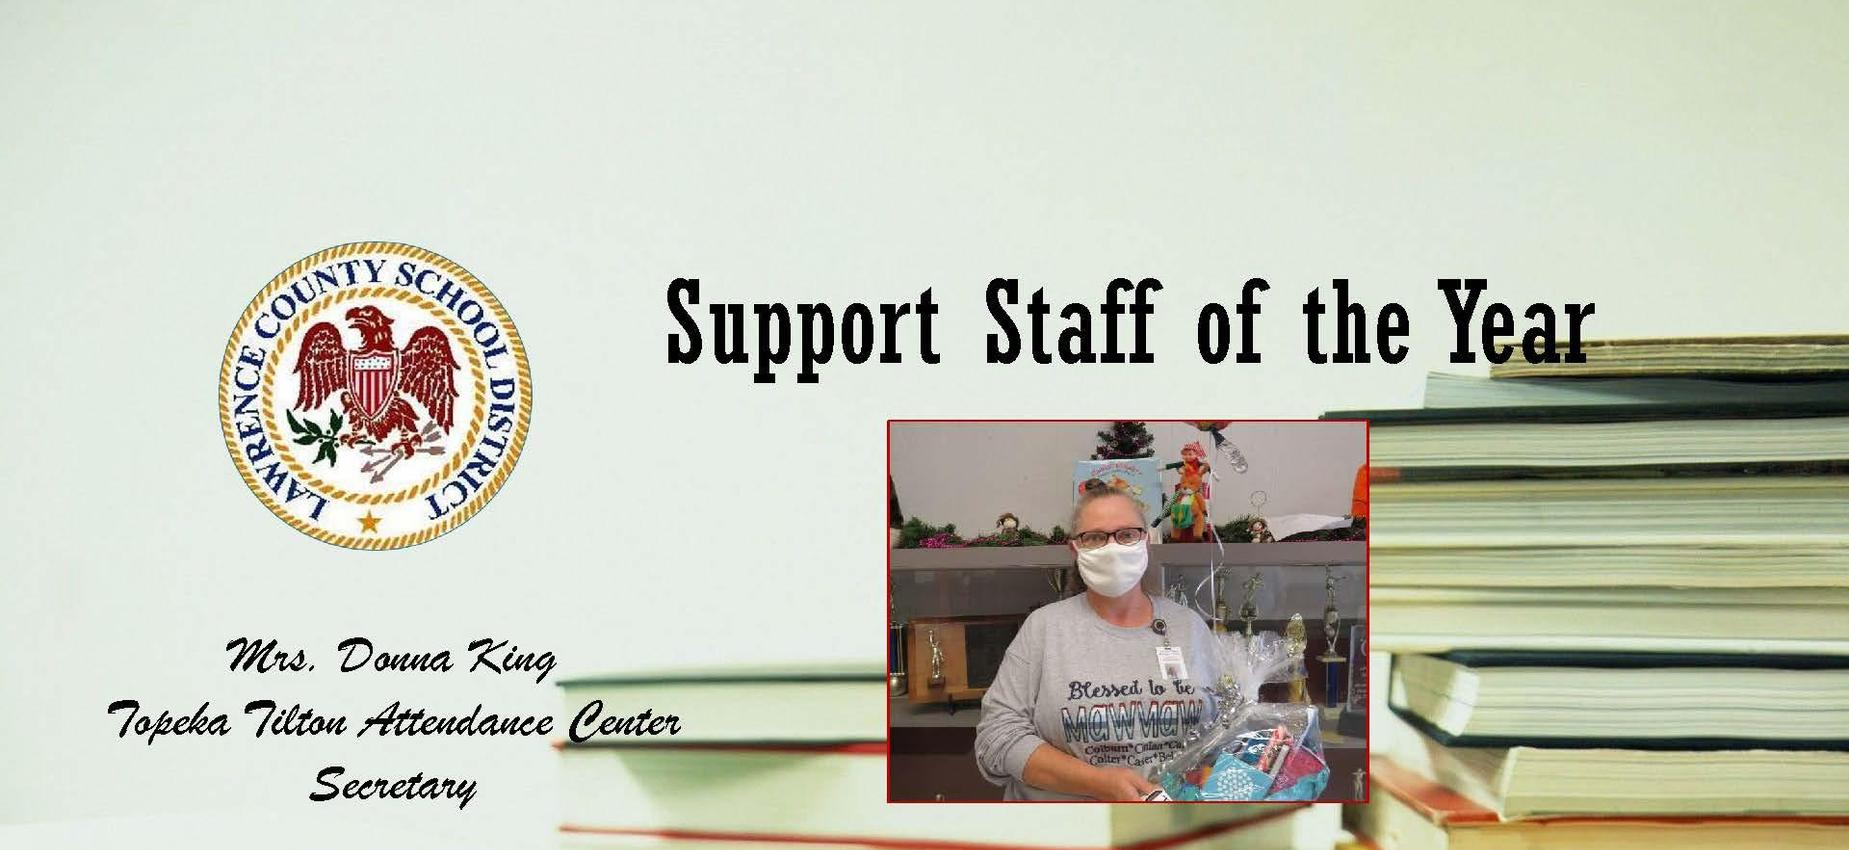 District Support Staff of the Year 2020- Mrs. Donna King